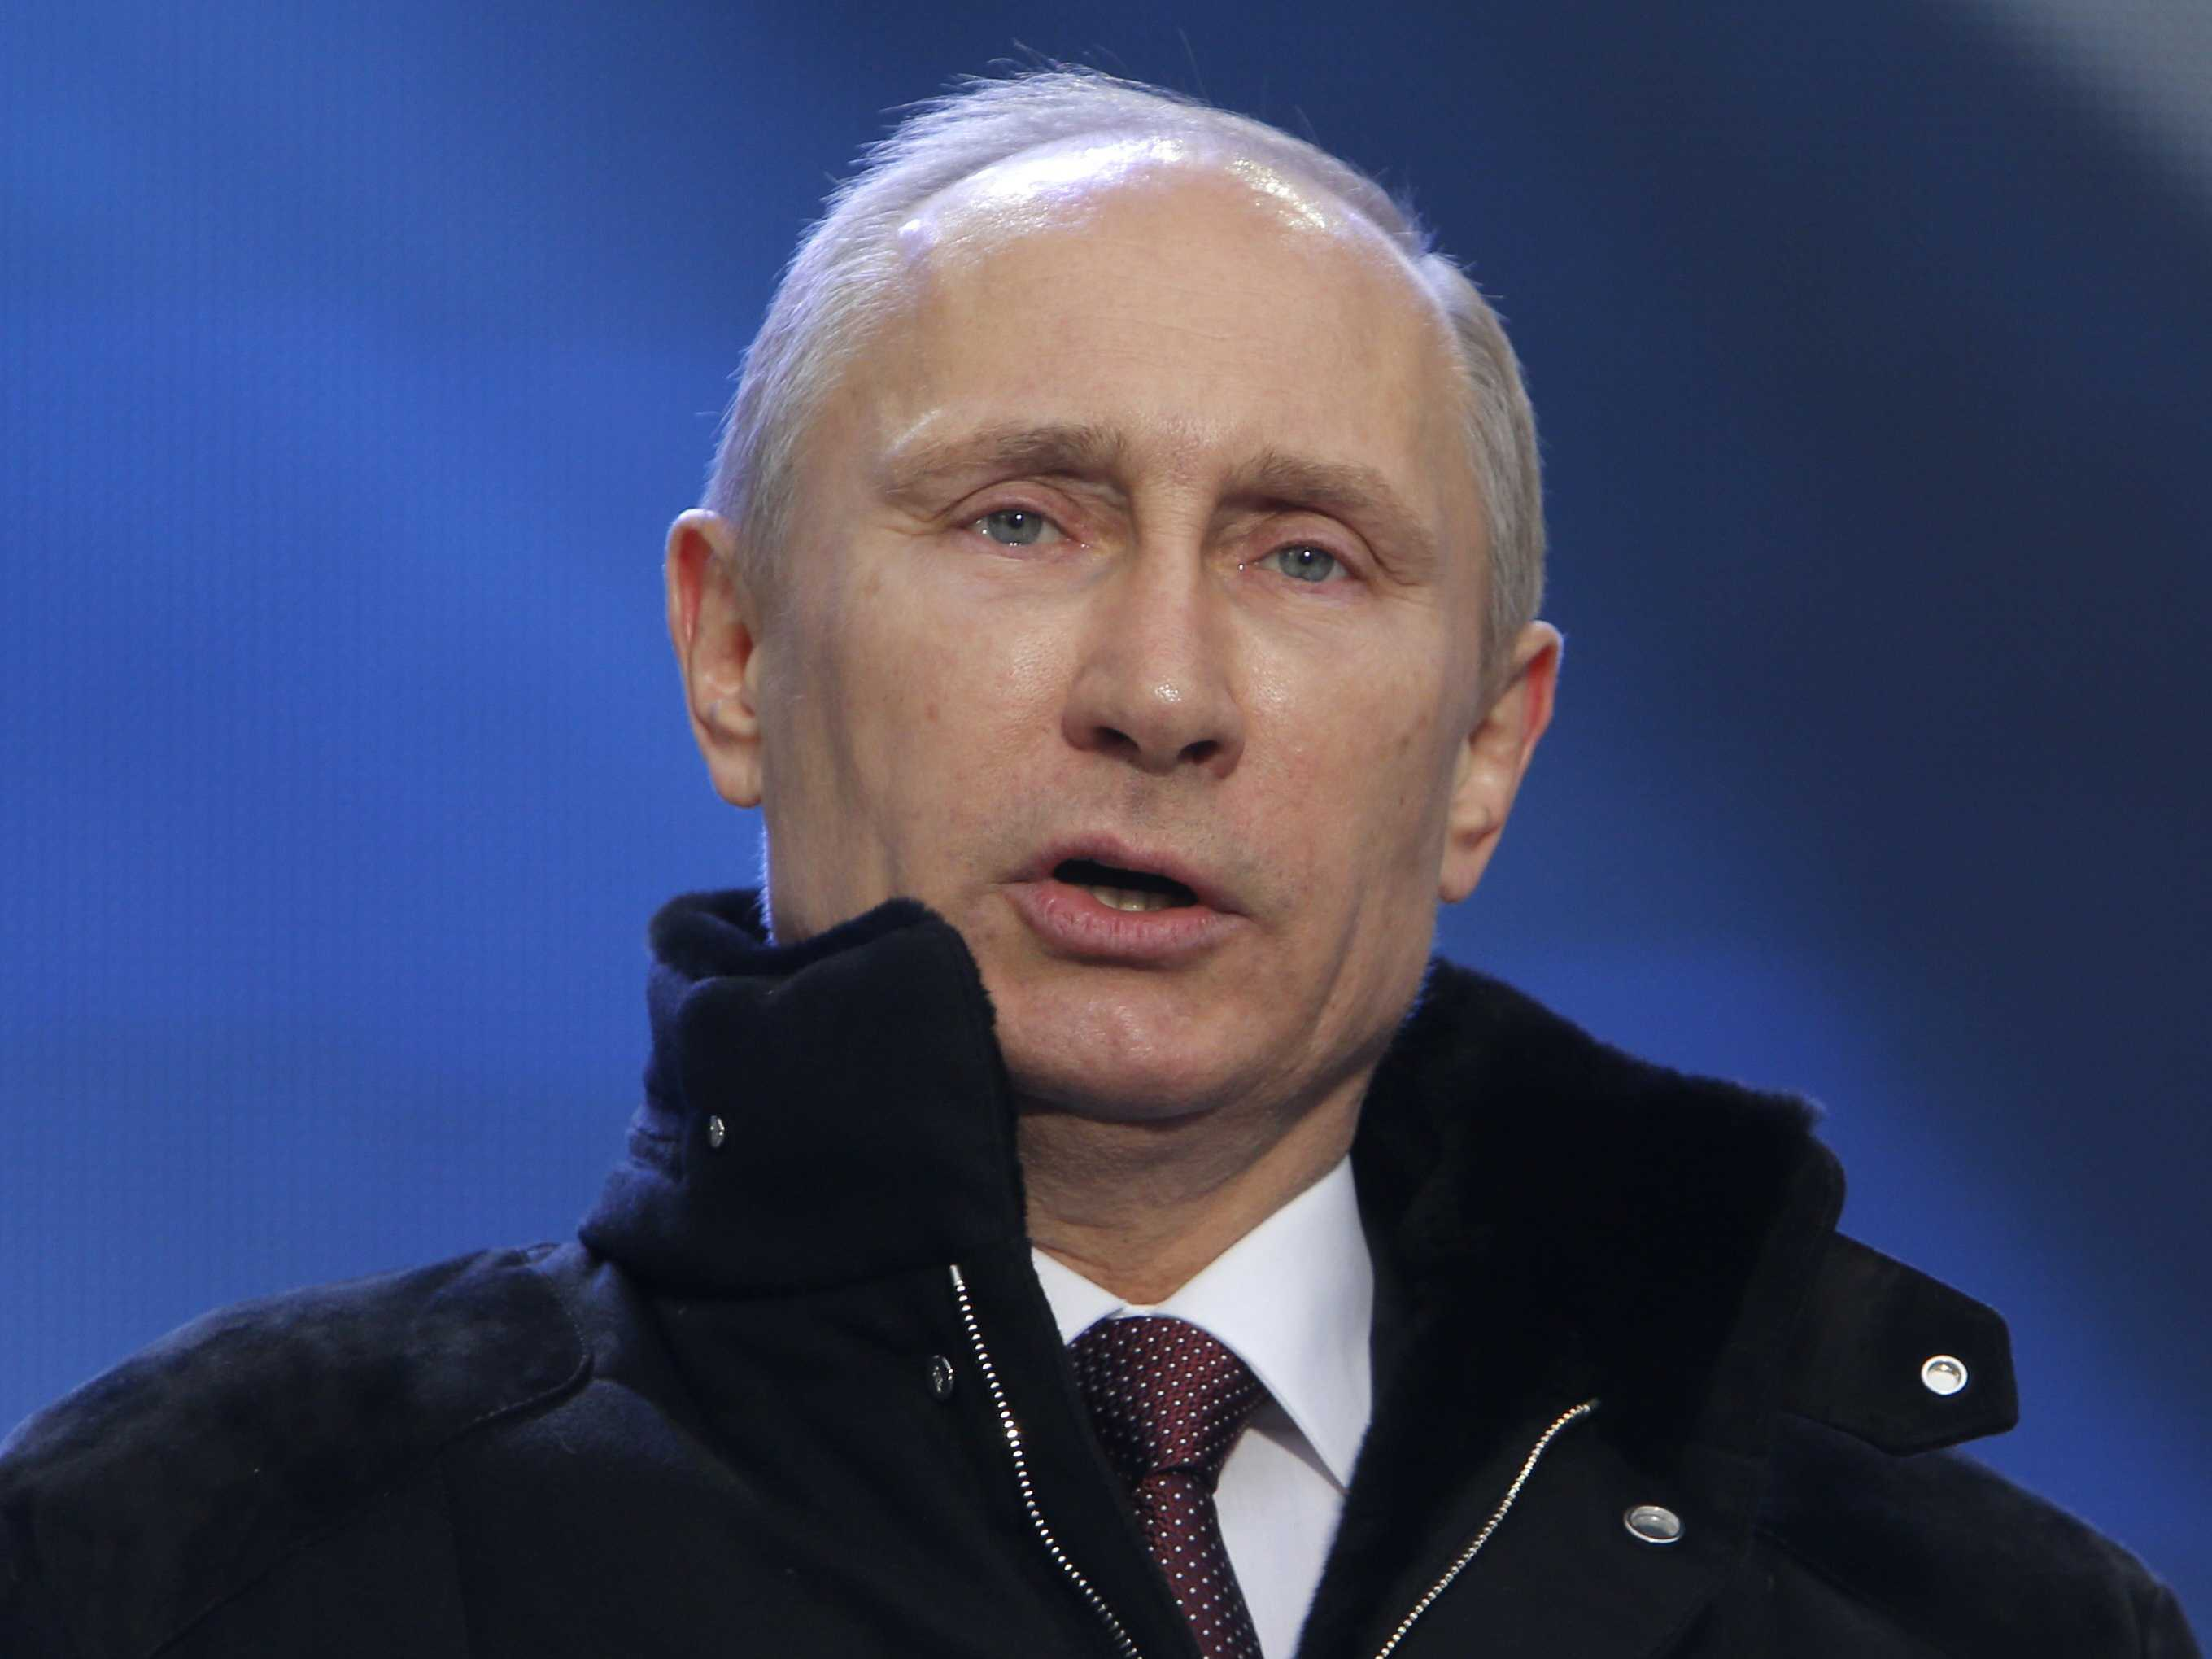 Russia's Vladimir Putin to create gambling zone in Crimea despite ongoing Ukrainian crisis.